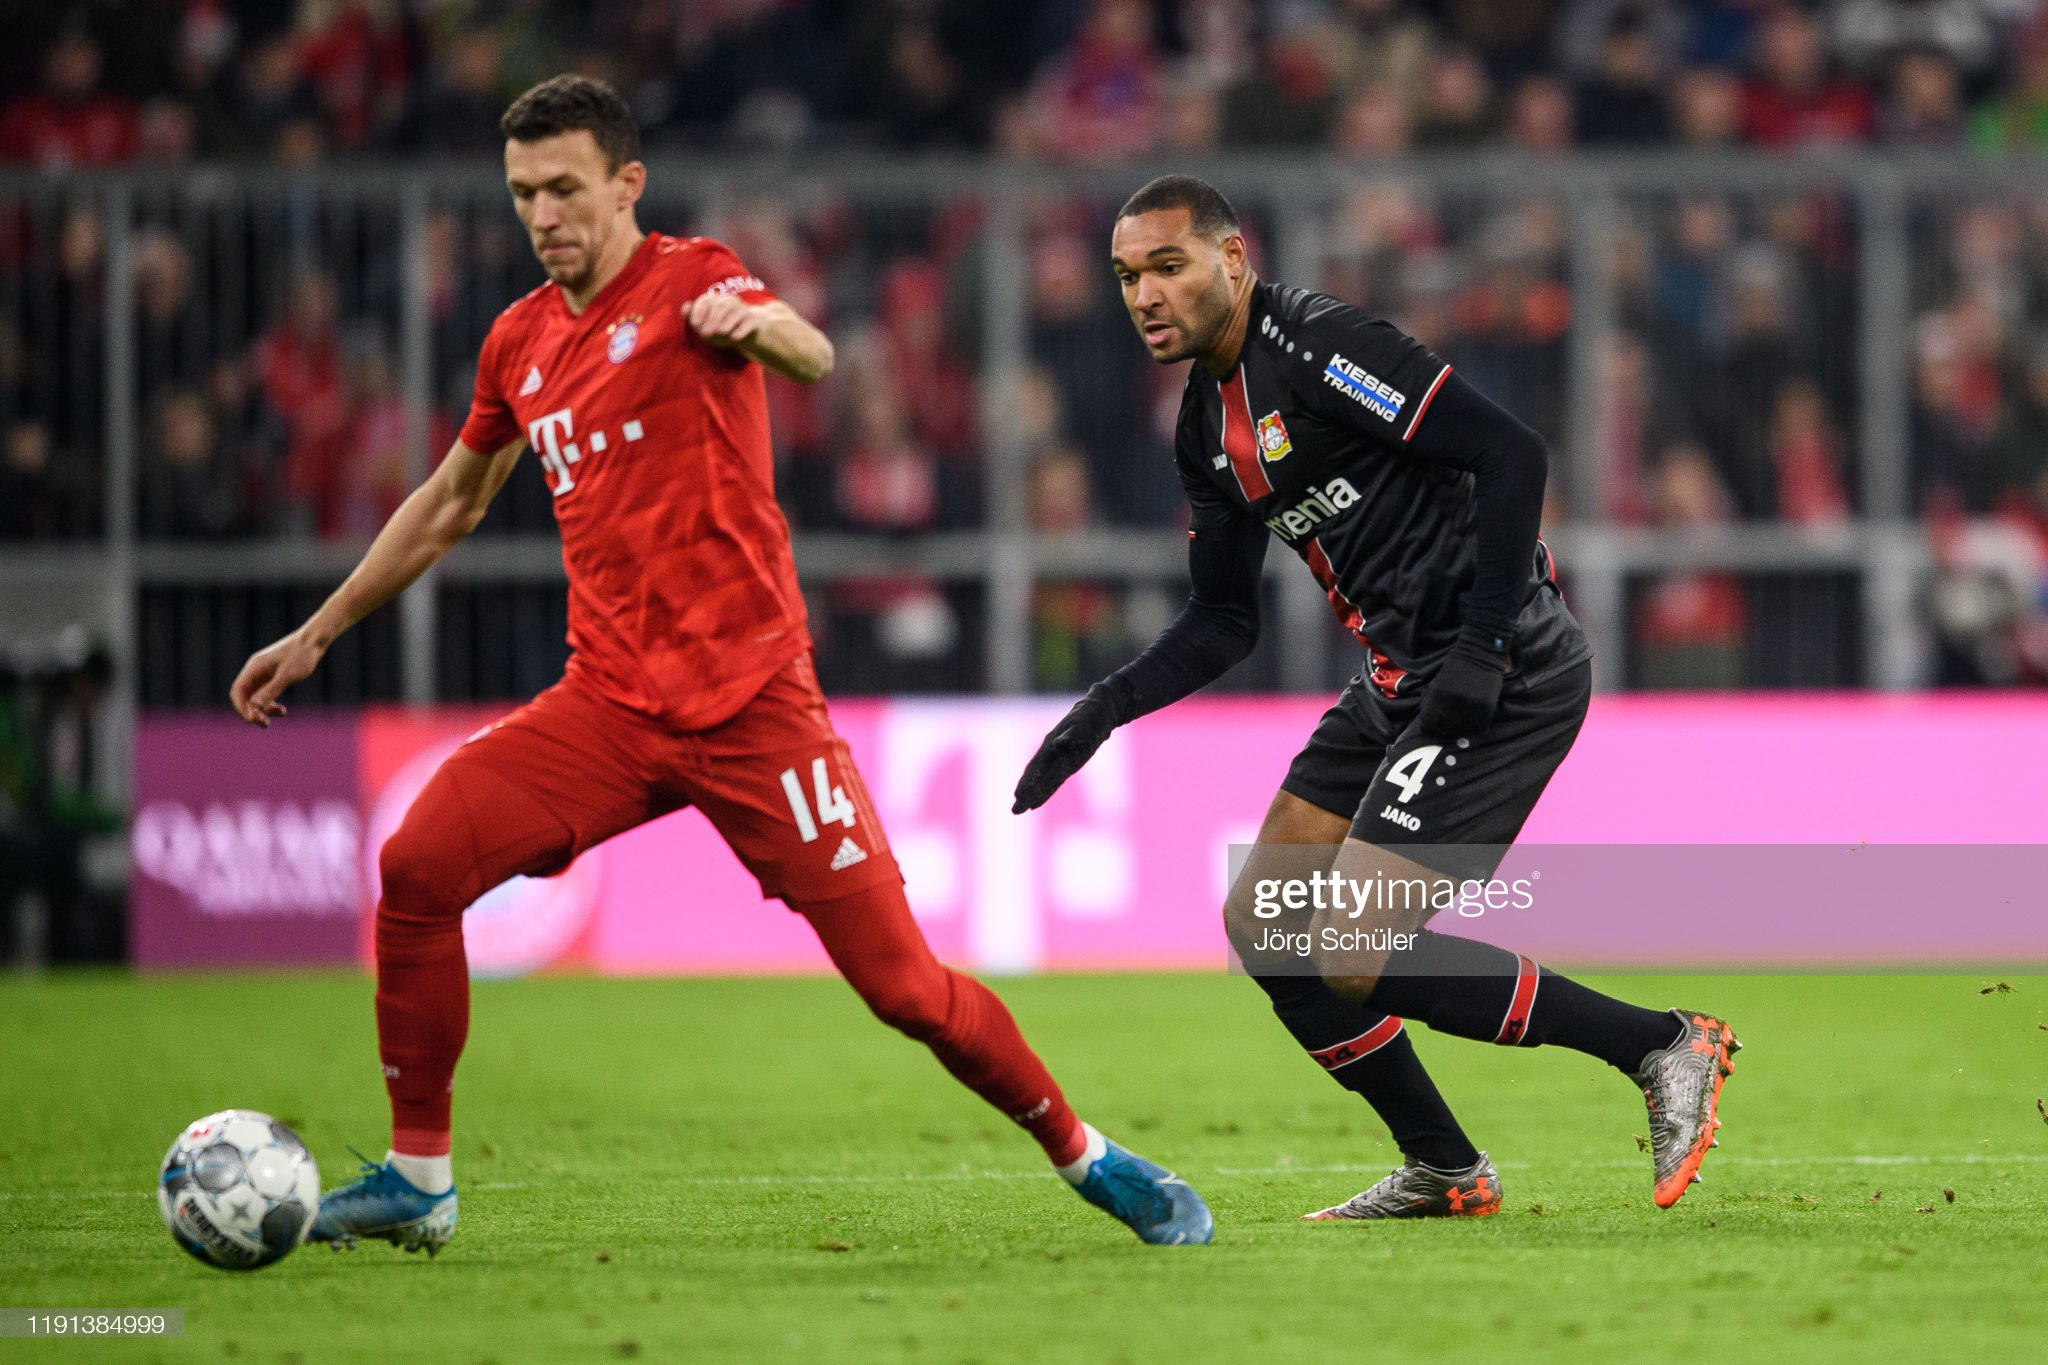 Bayer Leverkusen vs Bayern Munich preview, prediction and odds